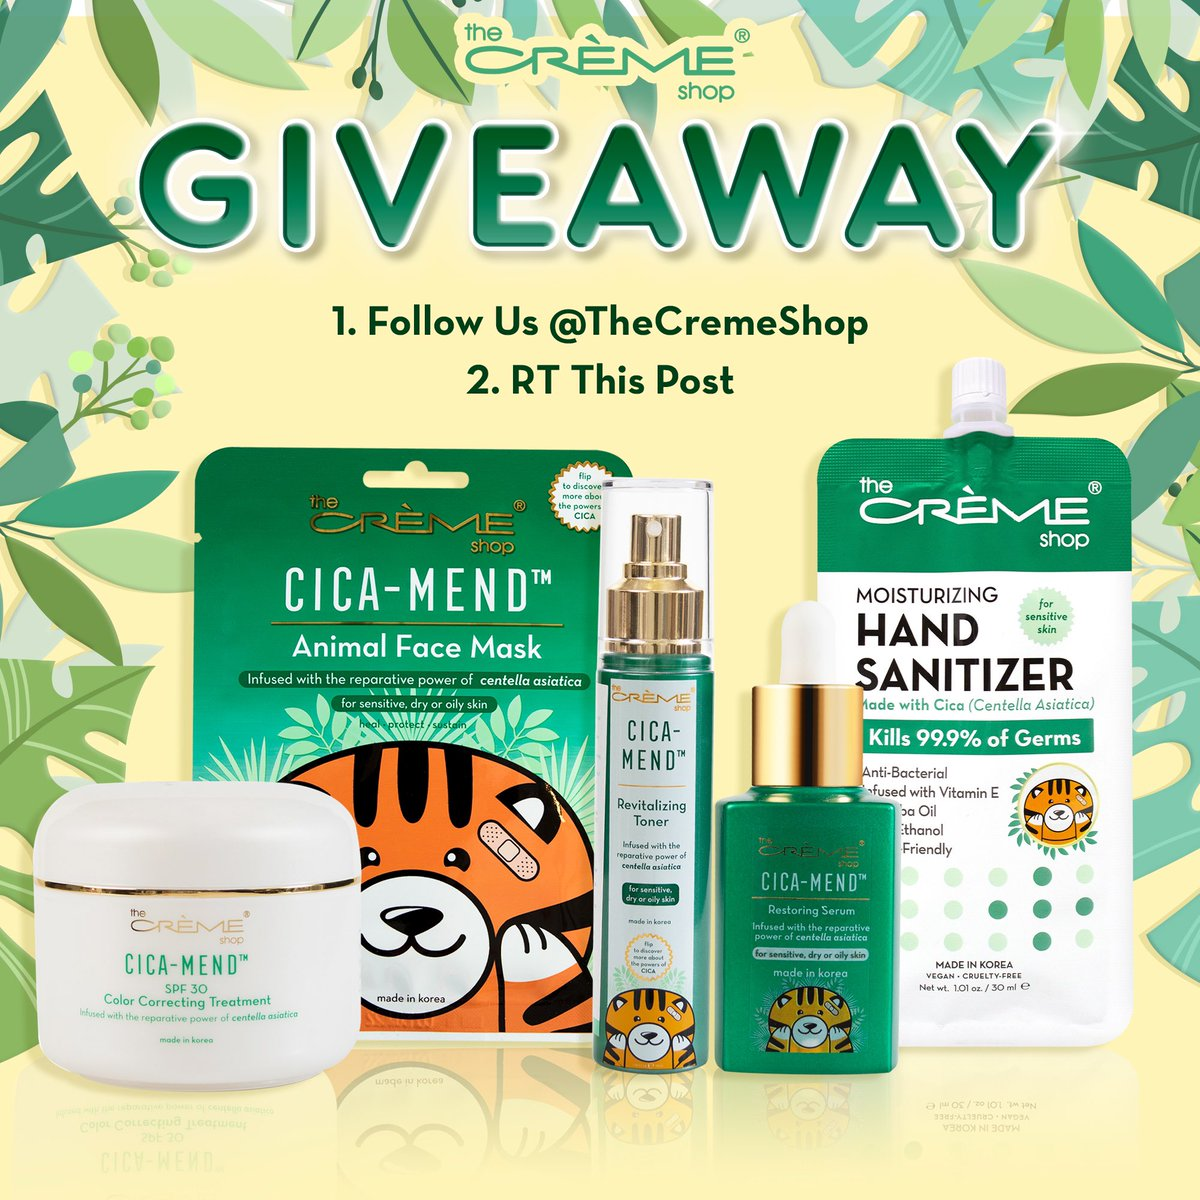 the ultimate k-beauty #giveaway 🍃✨ enter to win our CICA-MEND best sellers! our secret to radiant, clear skin 🤫  HOW TO ENTER: 🌱 FOLLOW us @thecremeshop 🌱 RT this post  we will DM the winner next wednesday! tag a friend for an extra entry 👀 https://t.co/WK65IOcXKu https://t.co/bTz3sASurW